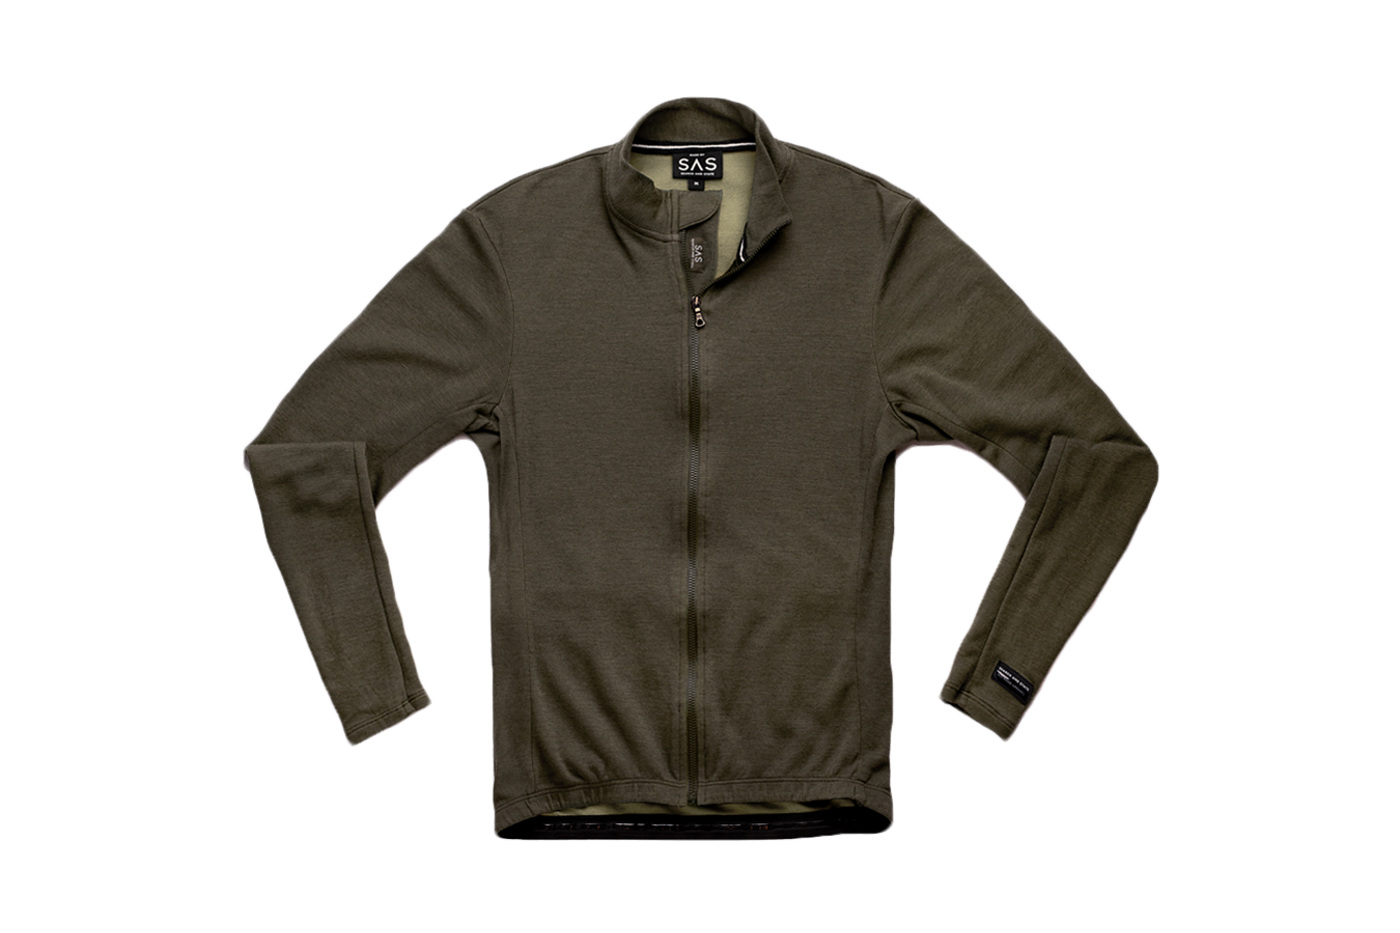 F'ck Yeah Olive Drab: Search and State Long Sleeve Merino Jersey